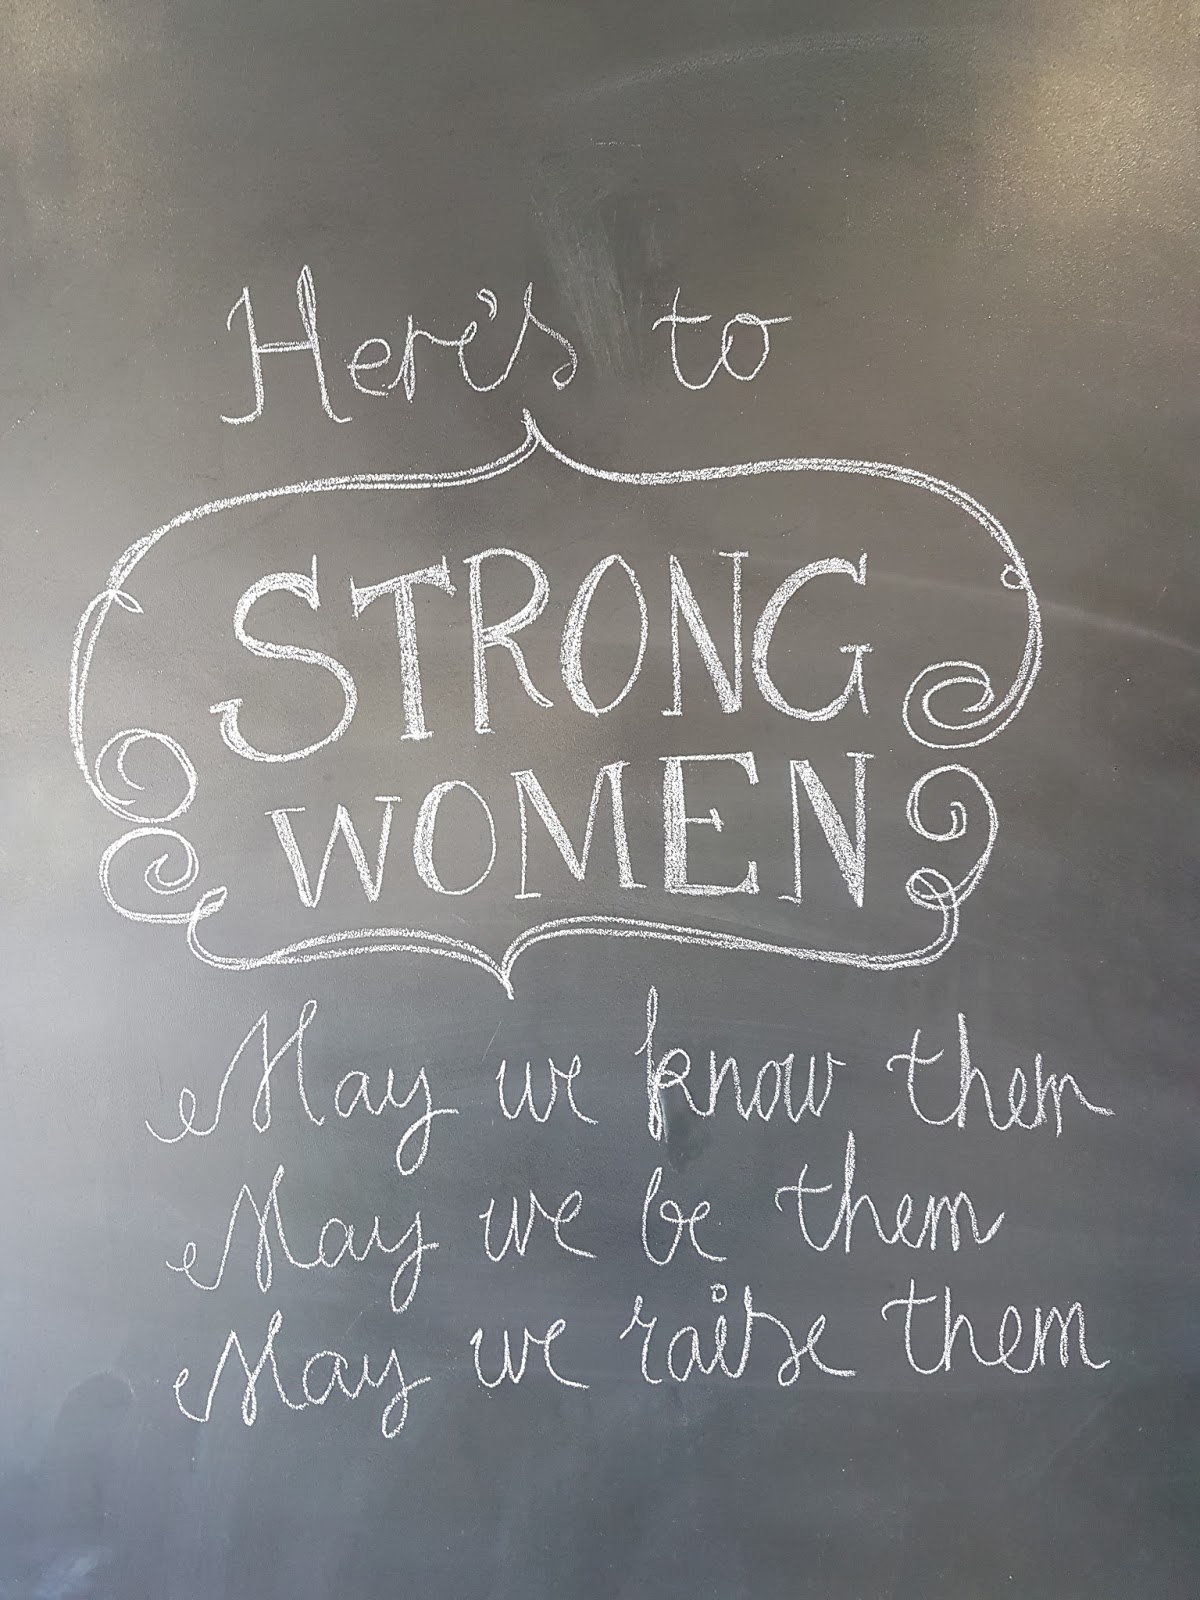 chalkboard wall with here's to strong women quote